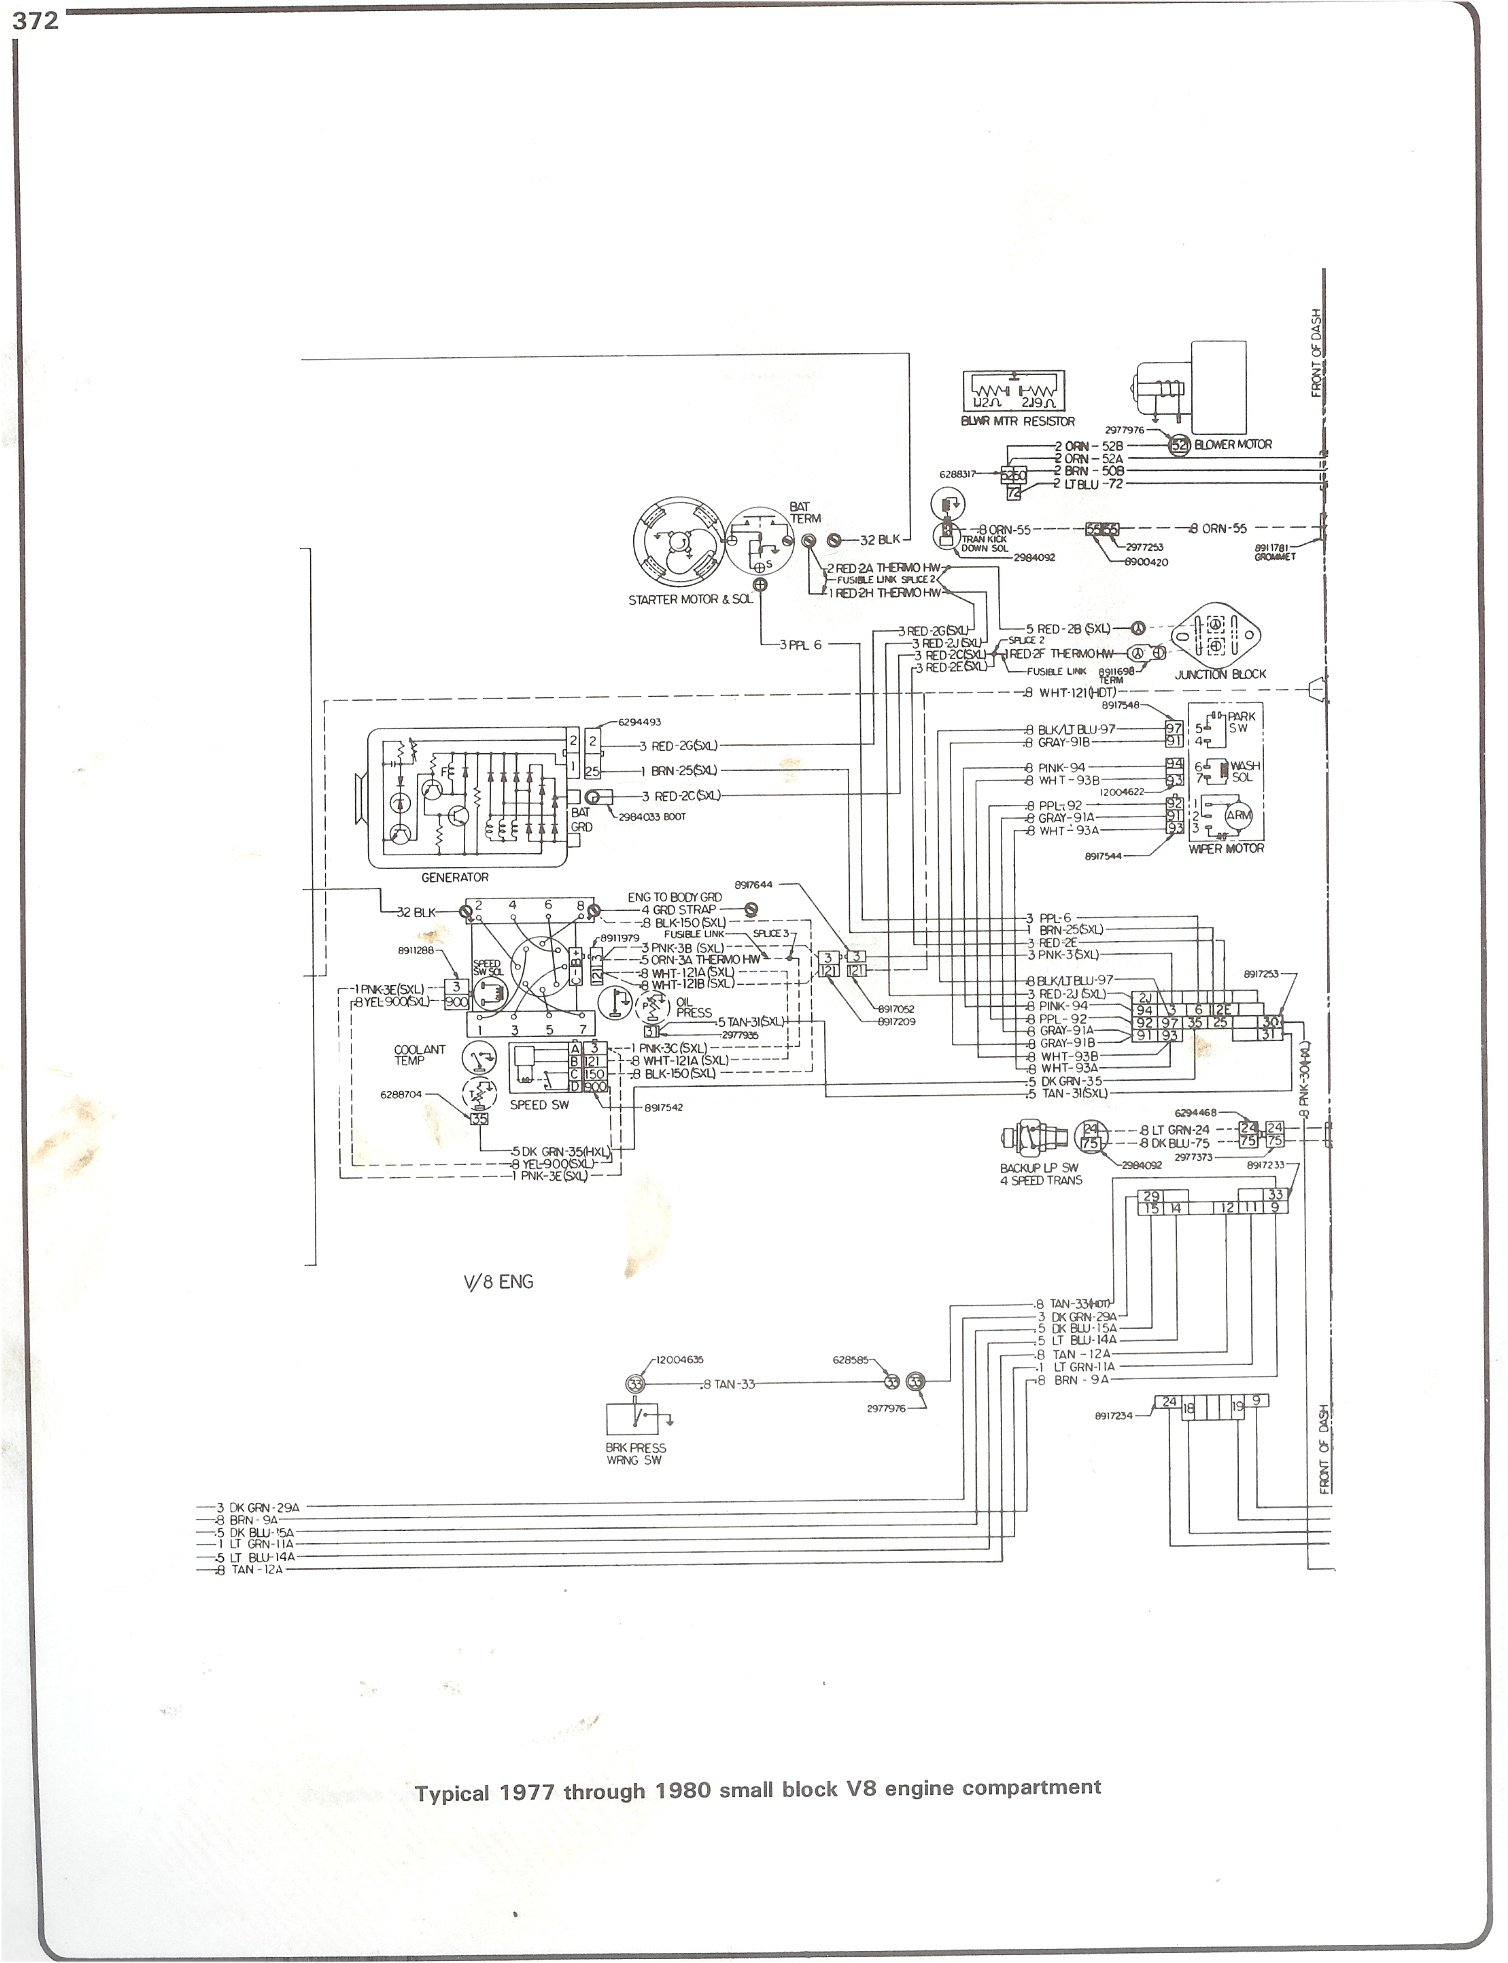 [WRG-6981] 1979 Chevy K10 Wiring Diagram